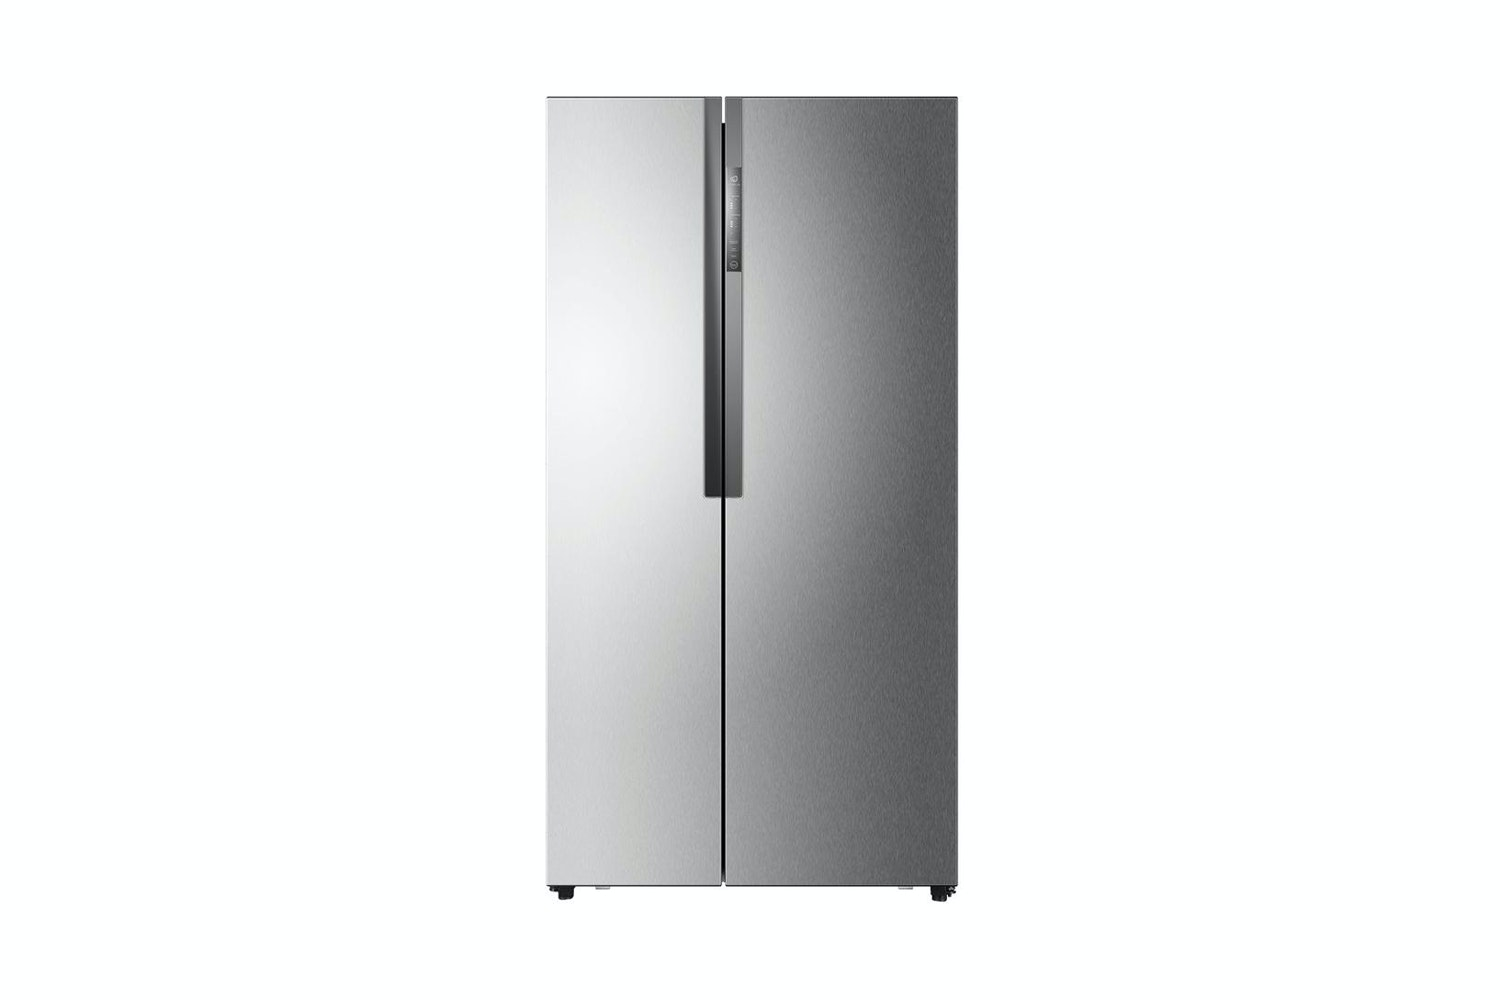 haier 555l side by side fridge freezer silver